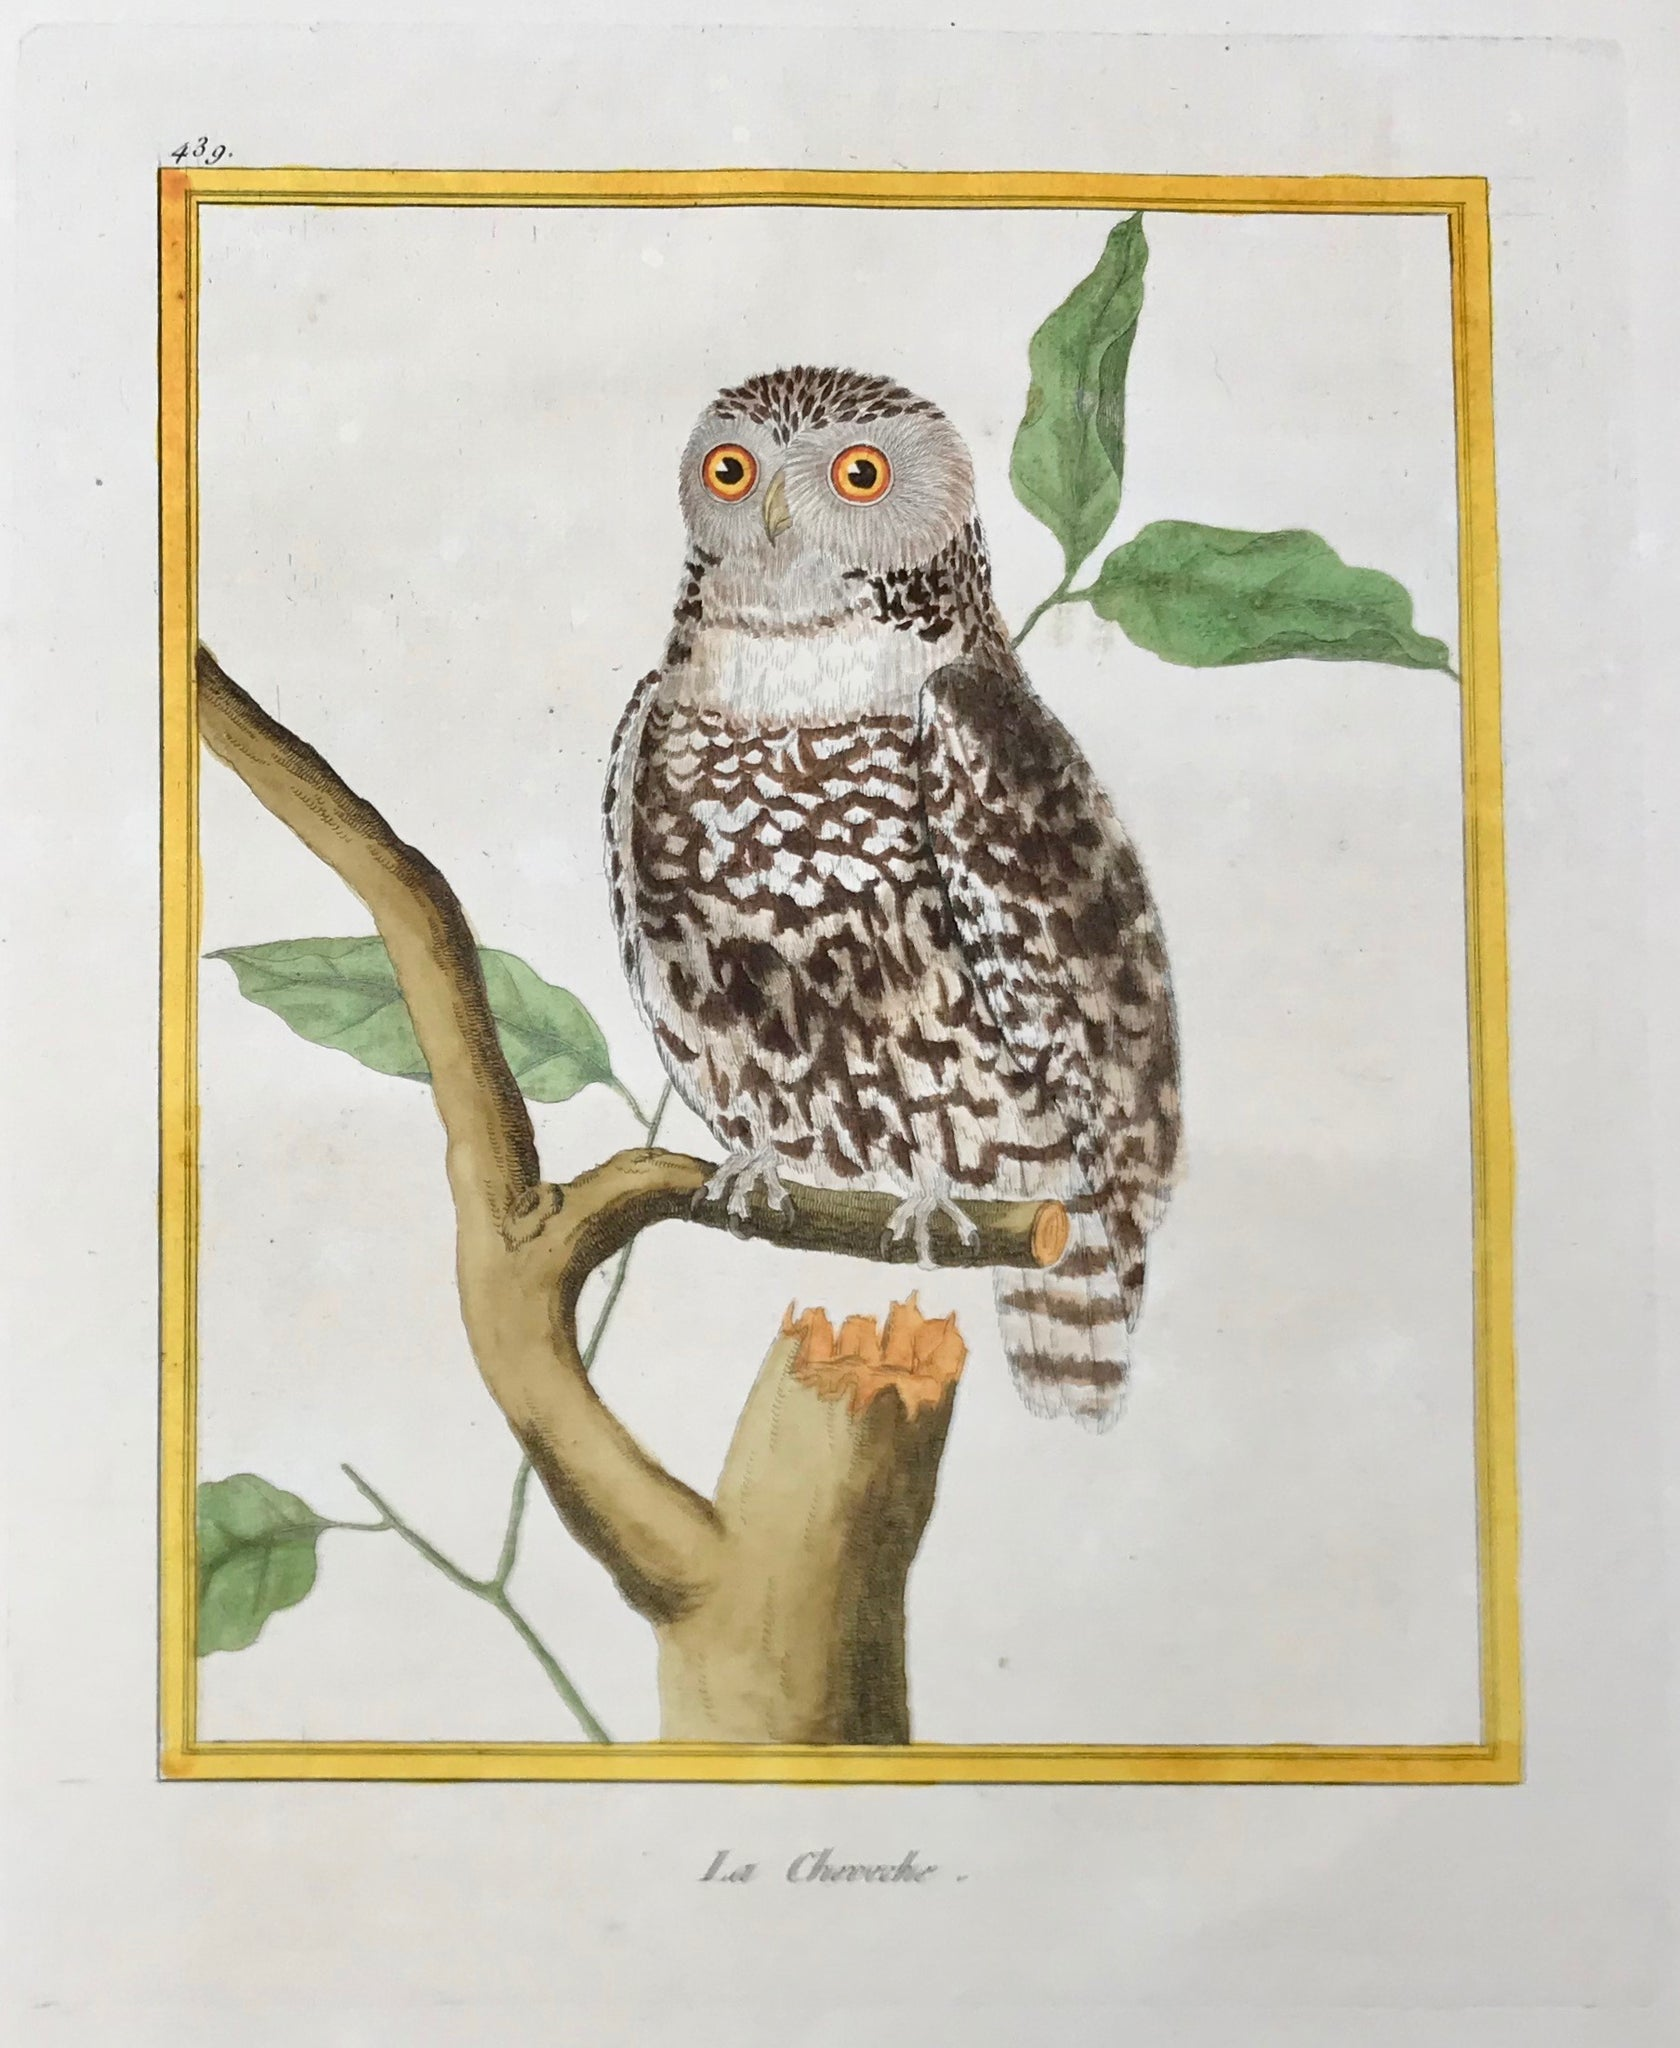 "Owls, Le Cheveche  Antique Owl Prints  by François Nicolas Martinet  Born 1731 in Paris. His death date is unknown (to us). In his monumental ""Histoire de les Oiseaux"", Paris, 1778, Martinet published literally the entire world of birds on 483 most decorative copper plates. Their original authentic hand-coloring is simply superb. And the one hundred and some plates we were able to buy are of the finest condition"